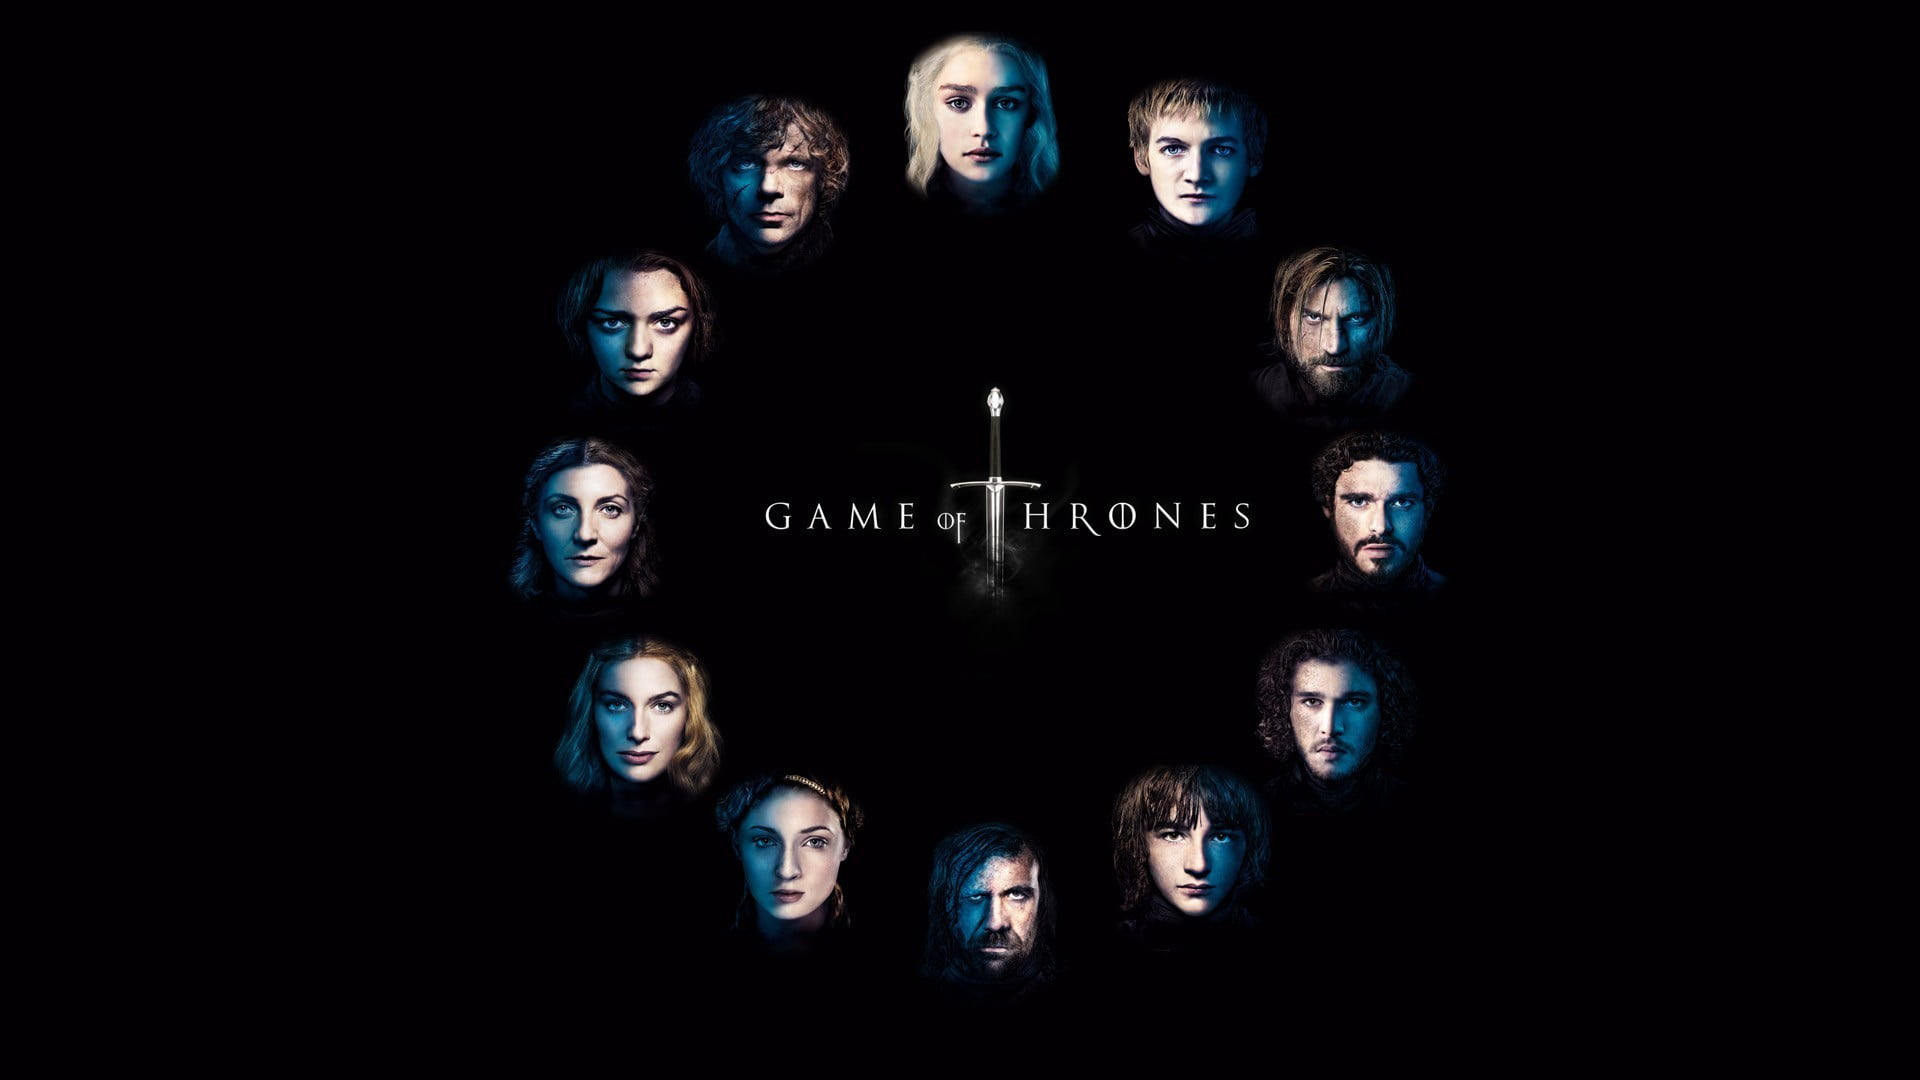 Game Of Thrones Wallpaper Hd Game Of Thrones Iphone 26903